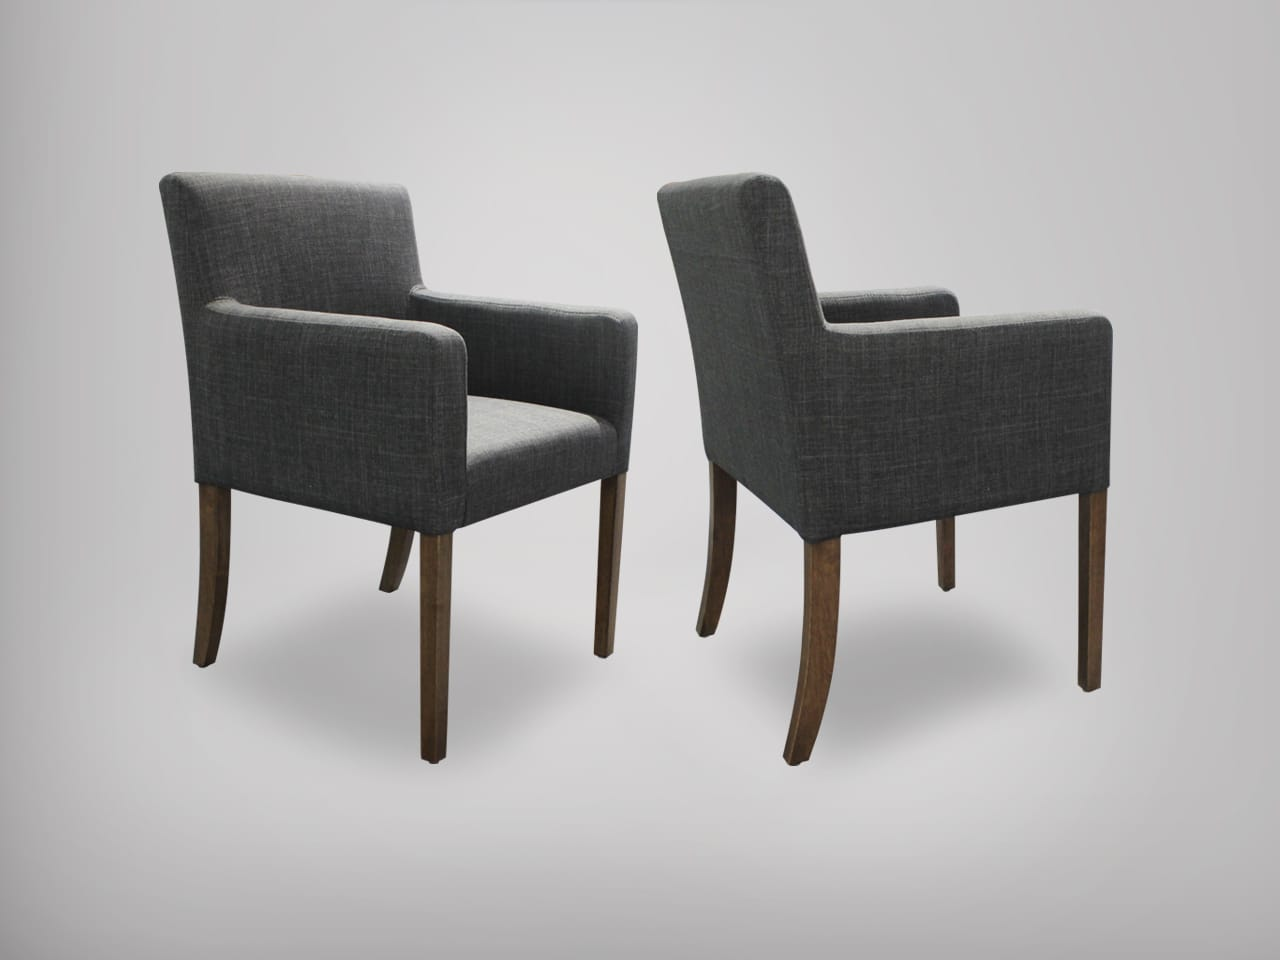 Jovita armchair comfort design the chair table people - Naturewood furniture for both indoor and outdoor sitting ...